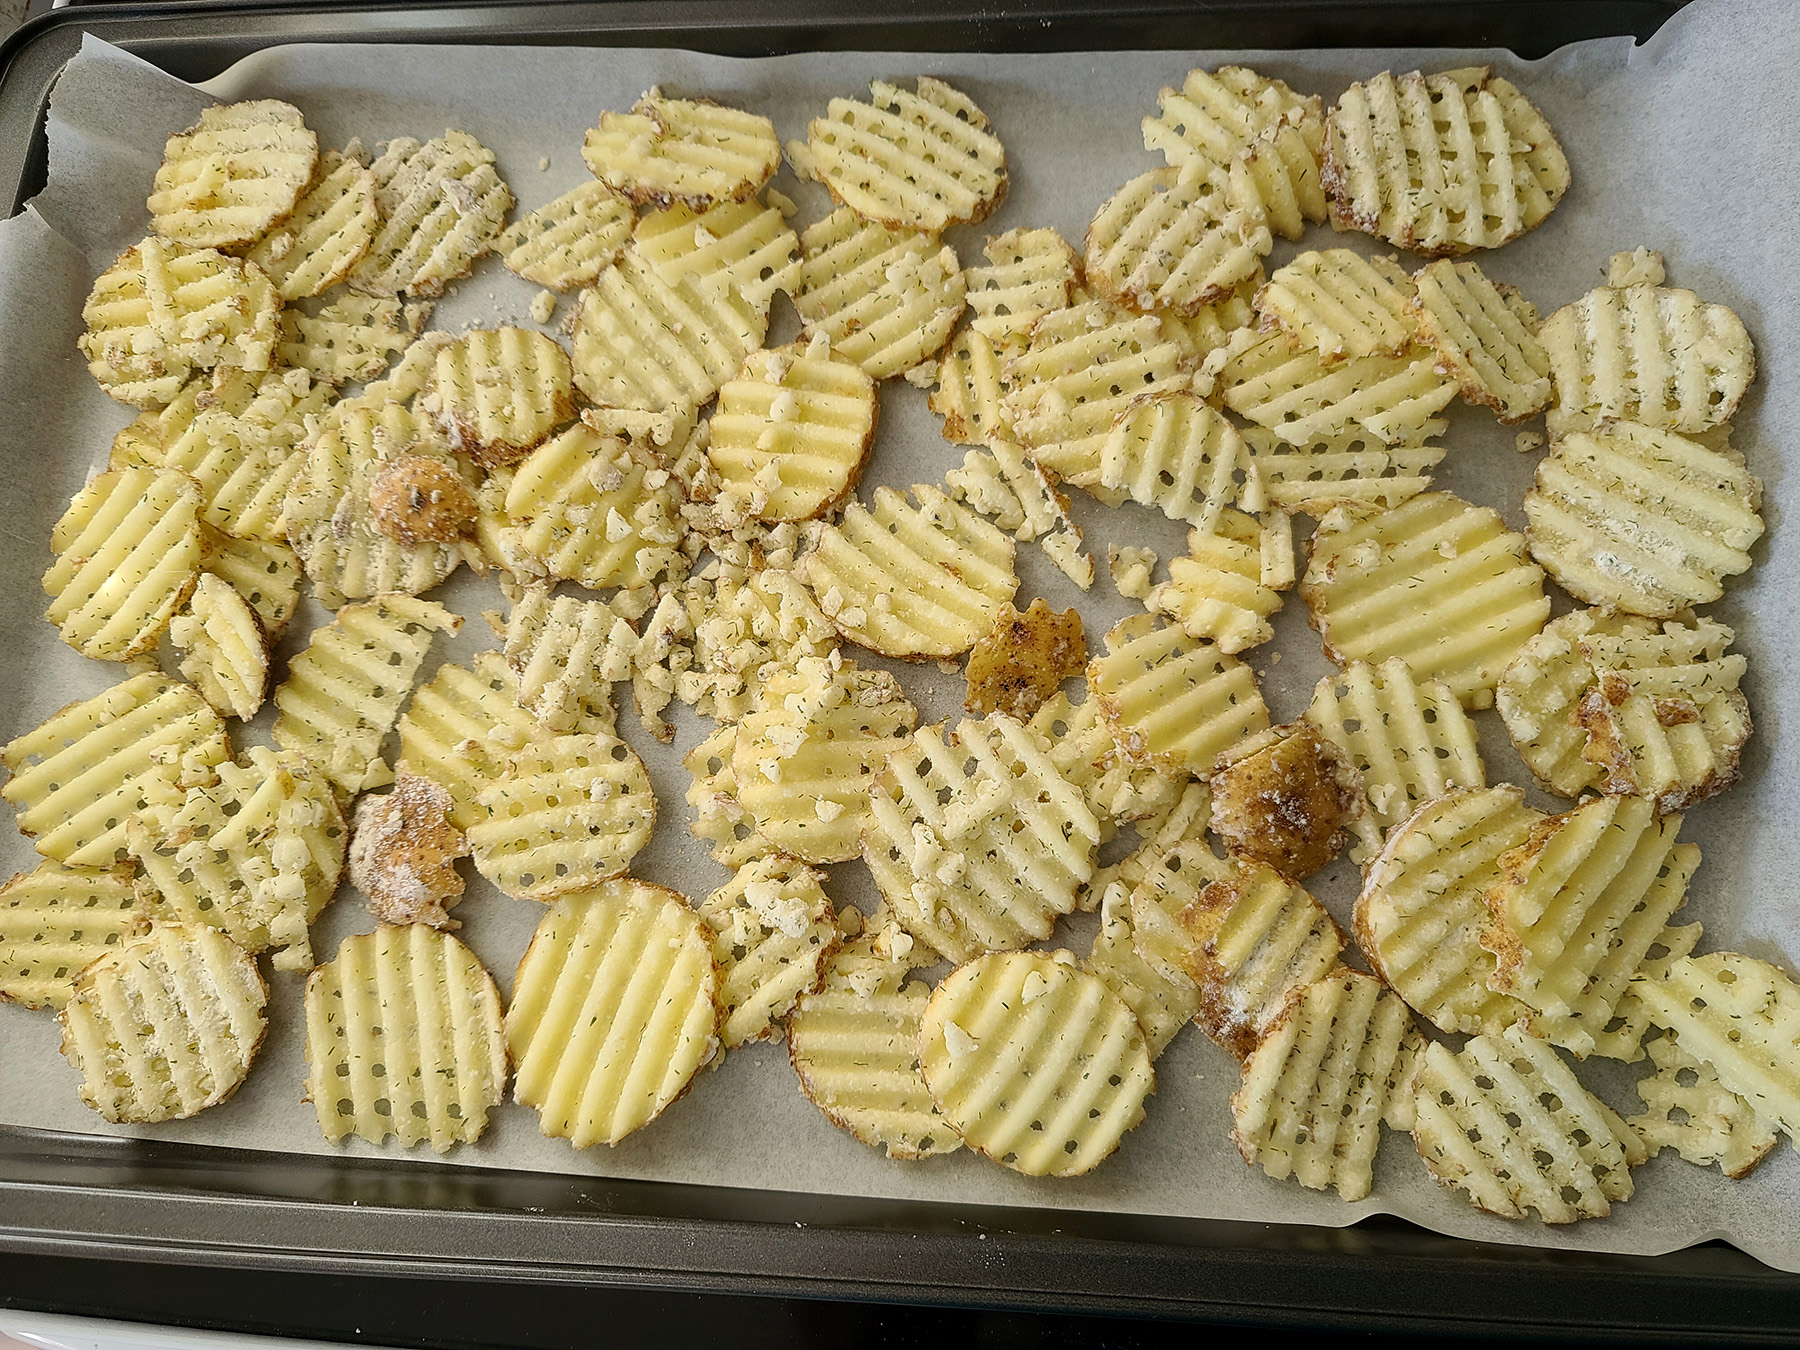 Coated homemade waffle cut fries on a baing sheet lined with parchment paper.